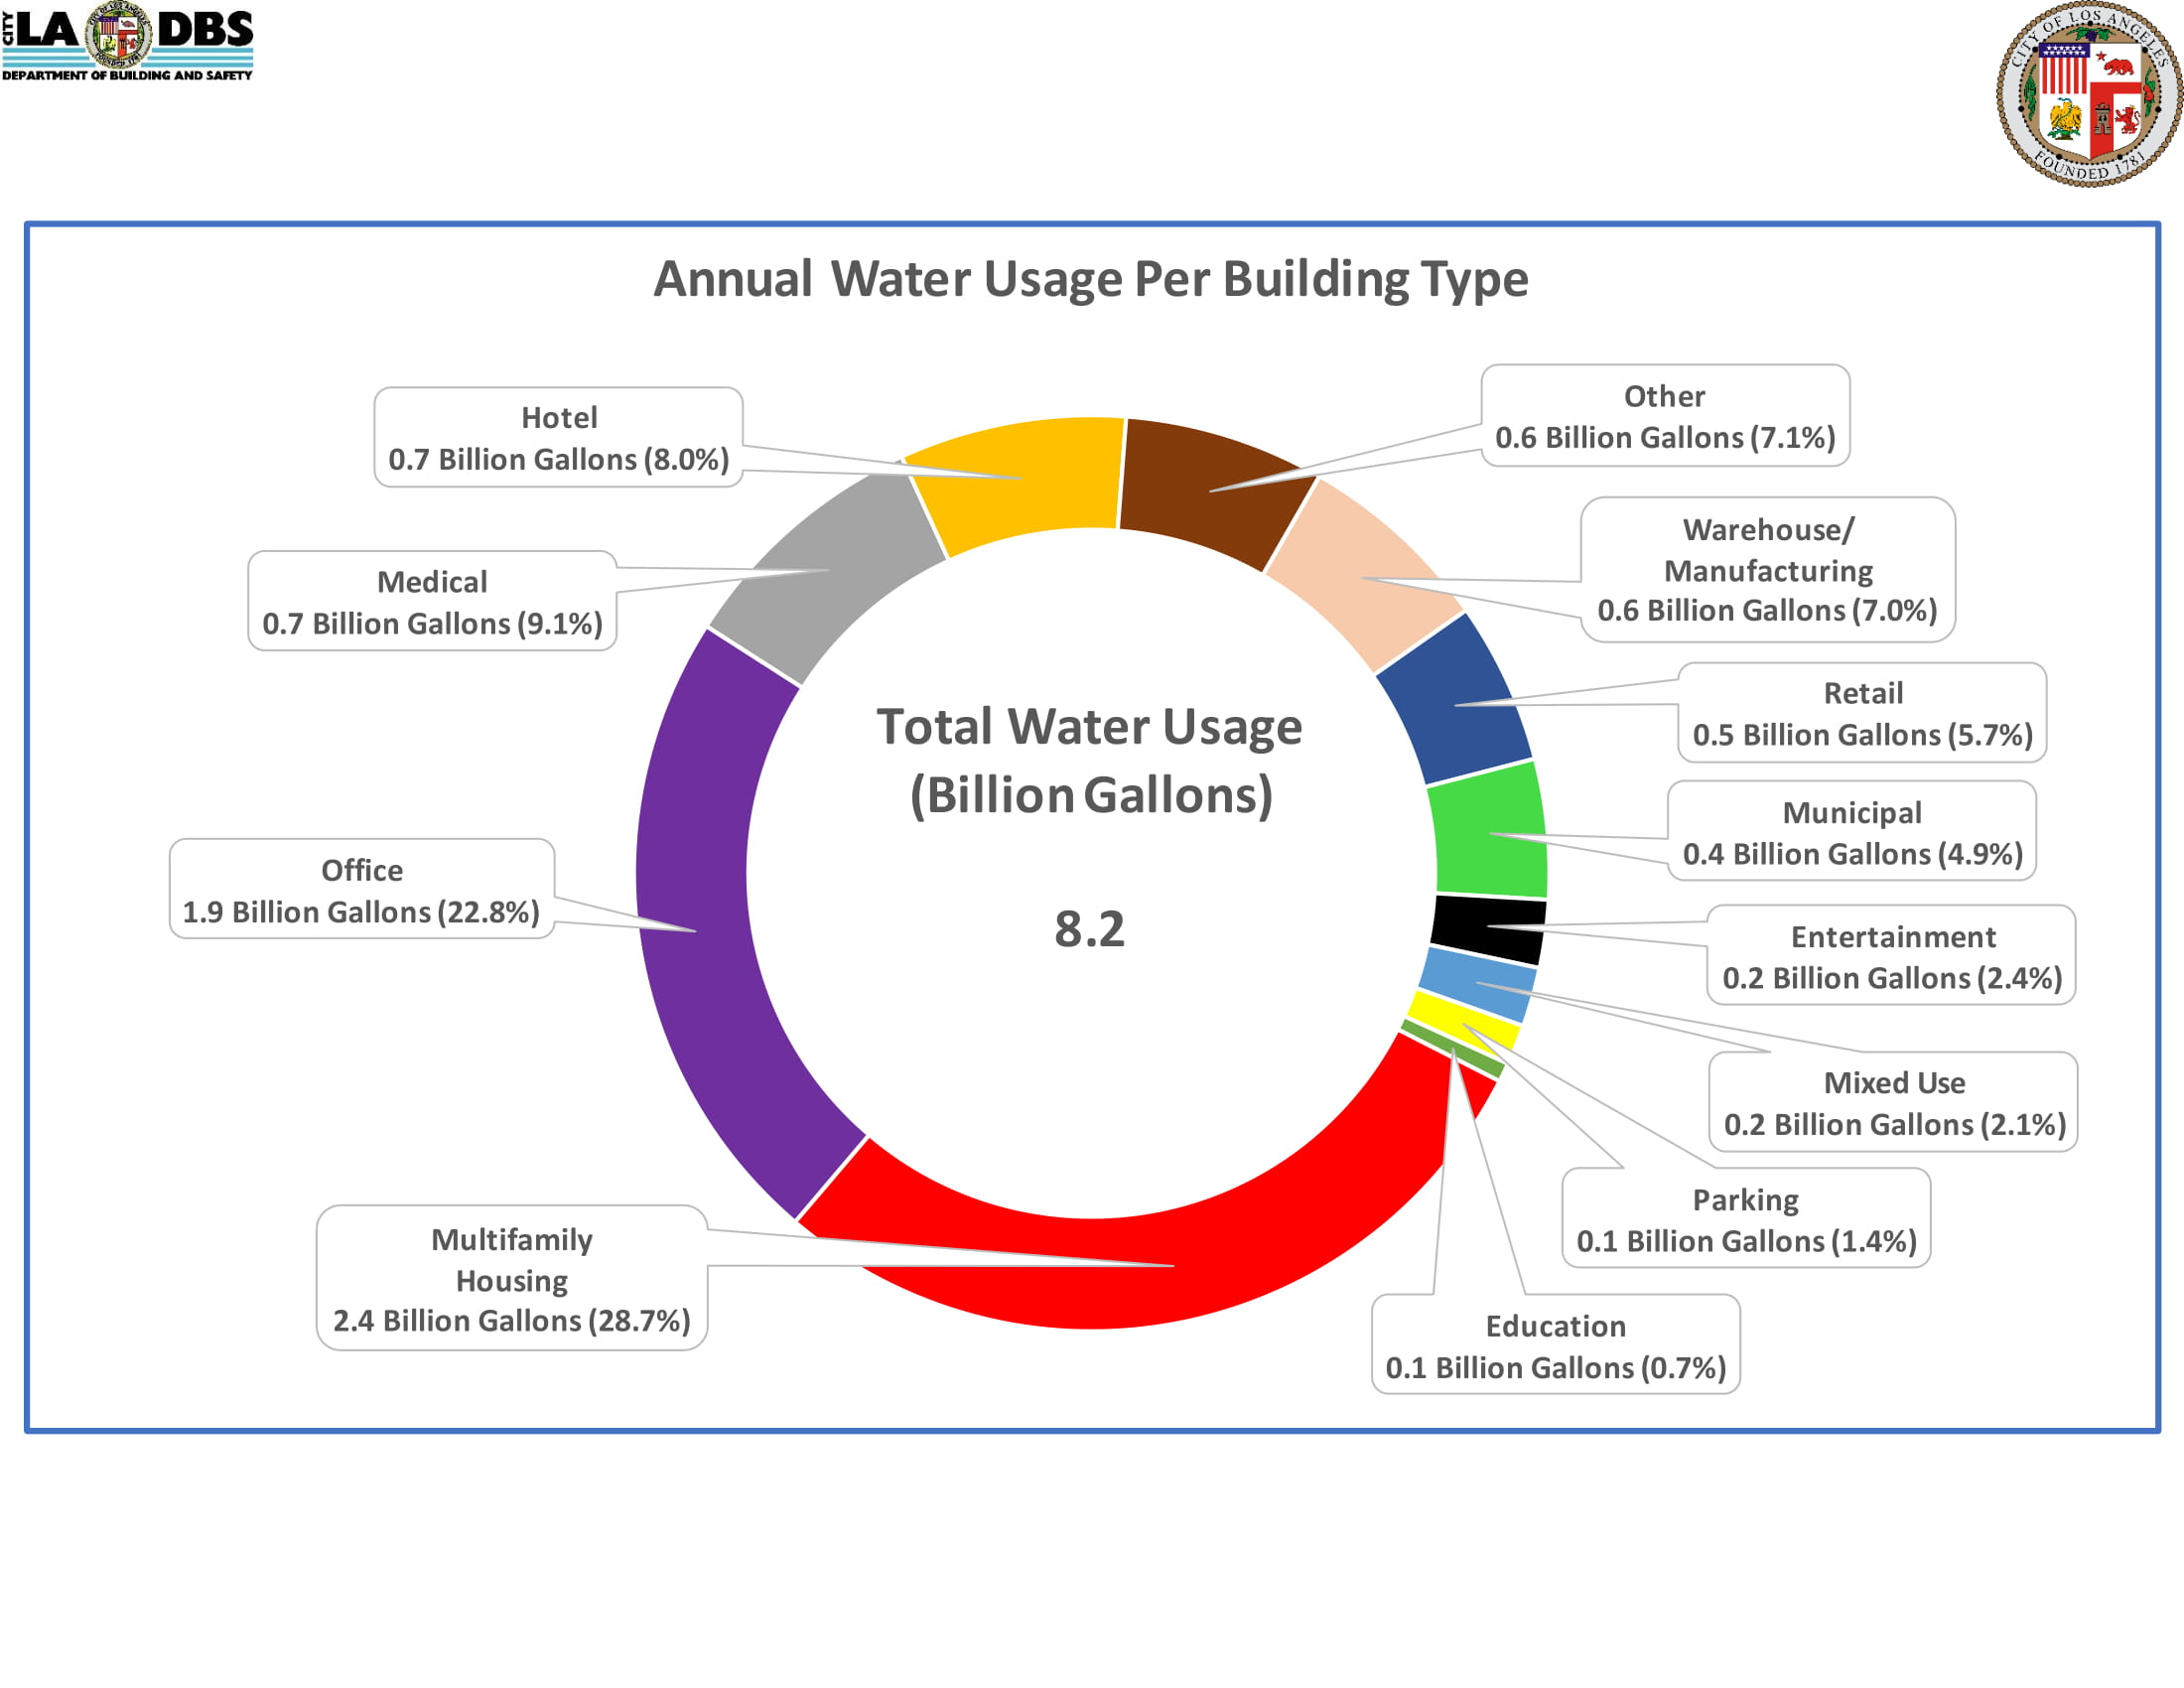 Annual Water Usage Per Building Type (Ring)